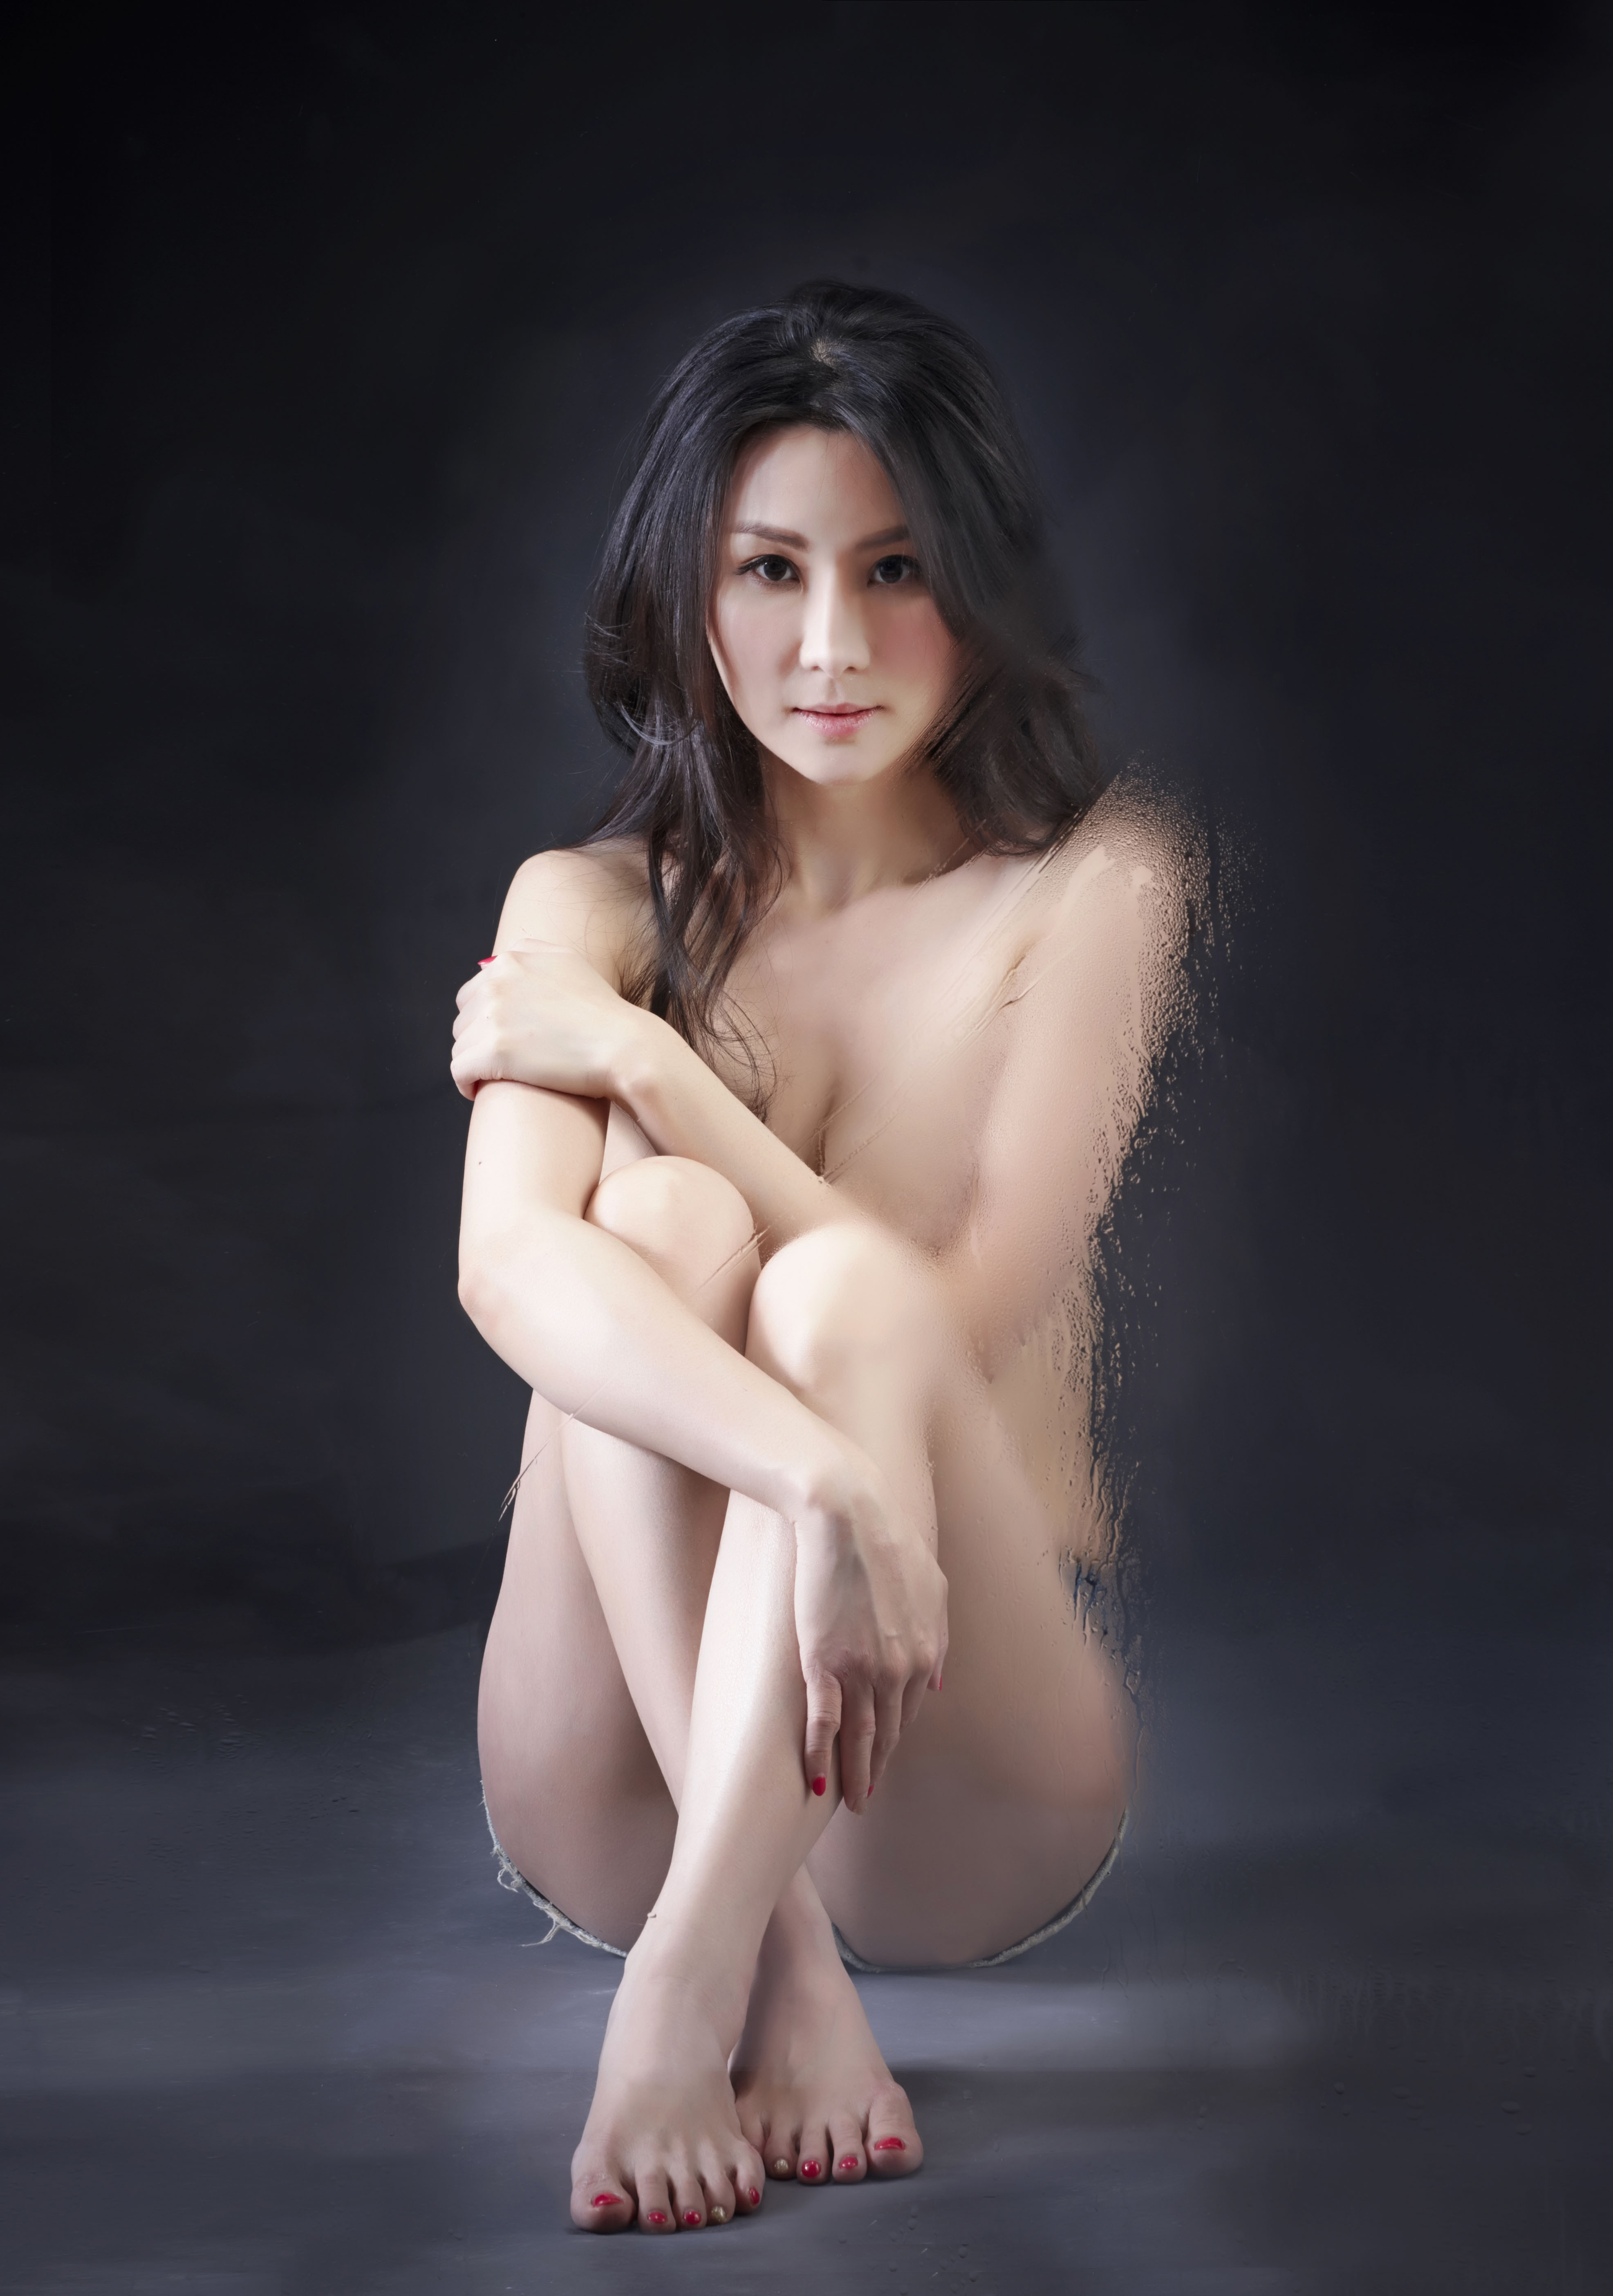 Dr Tiffiny Yang FHM model